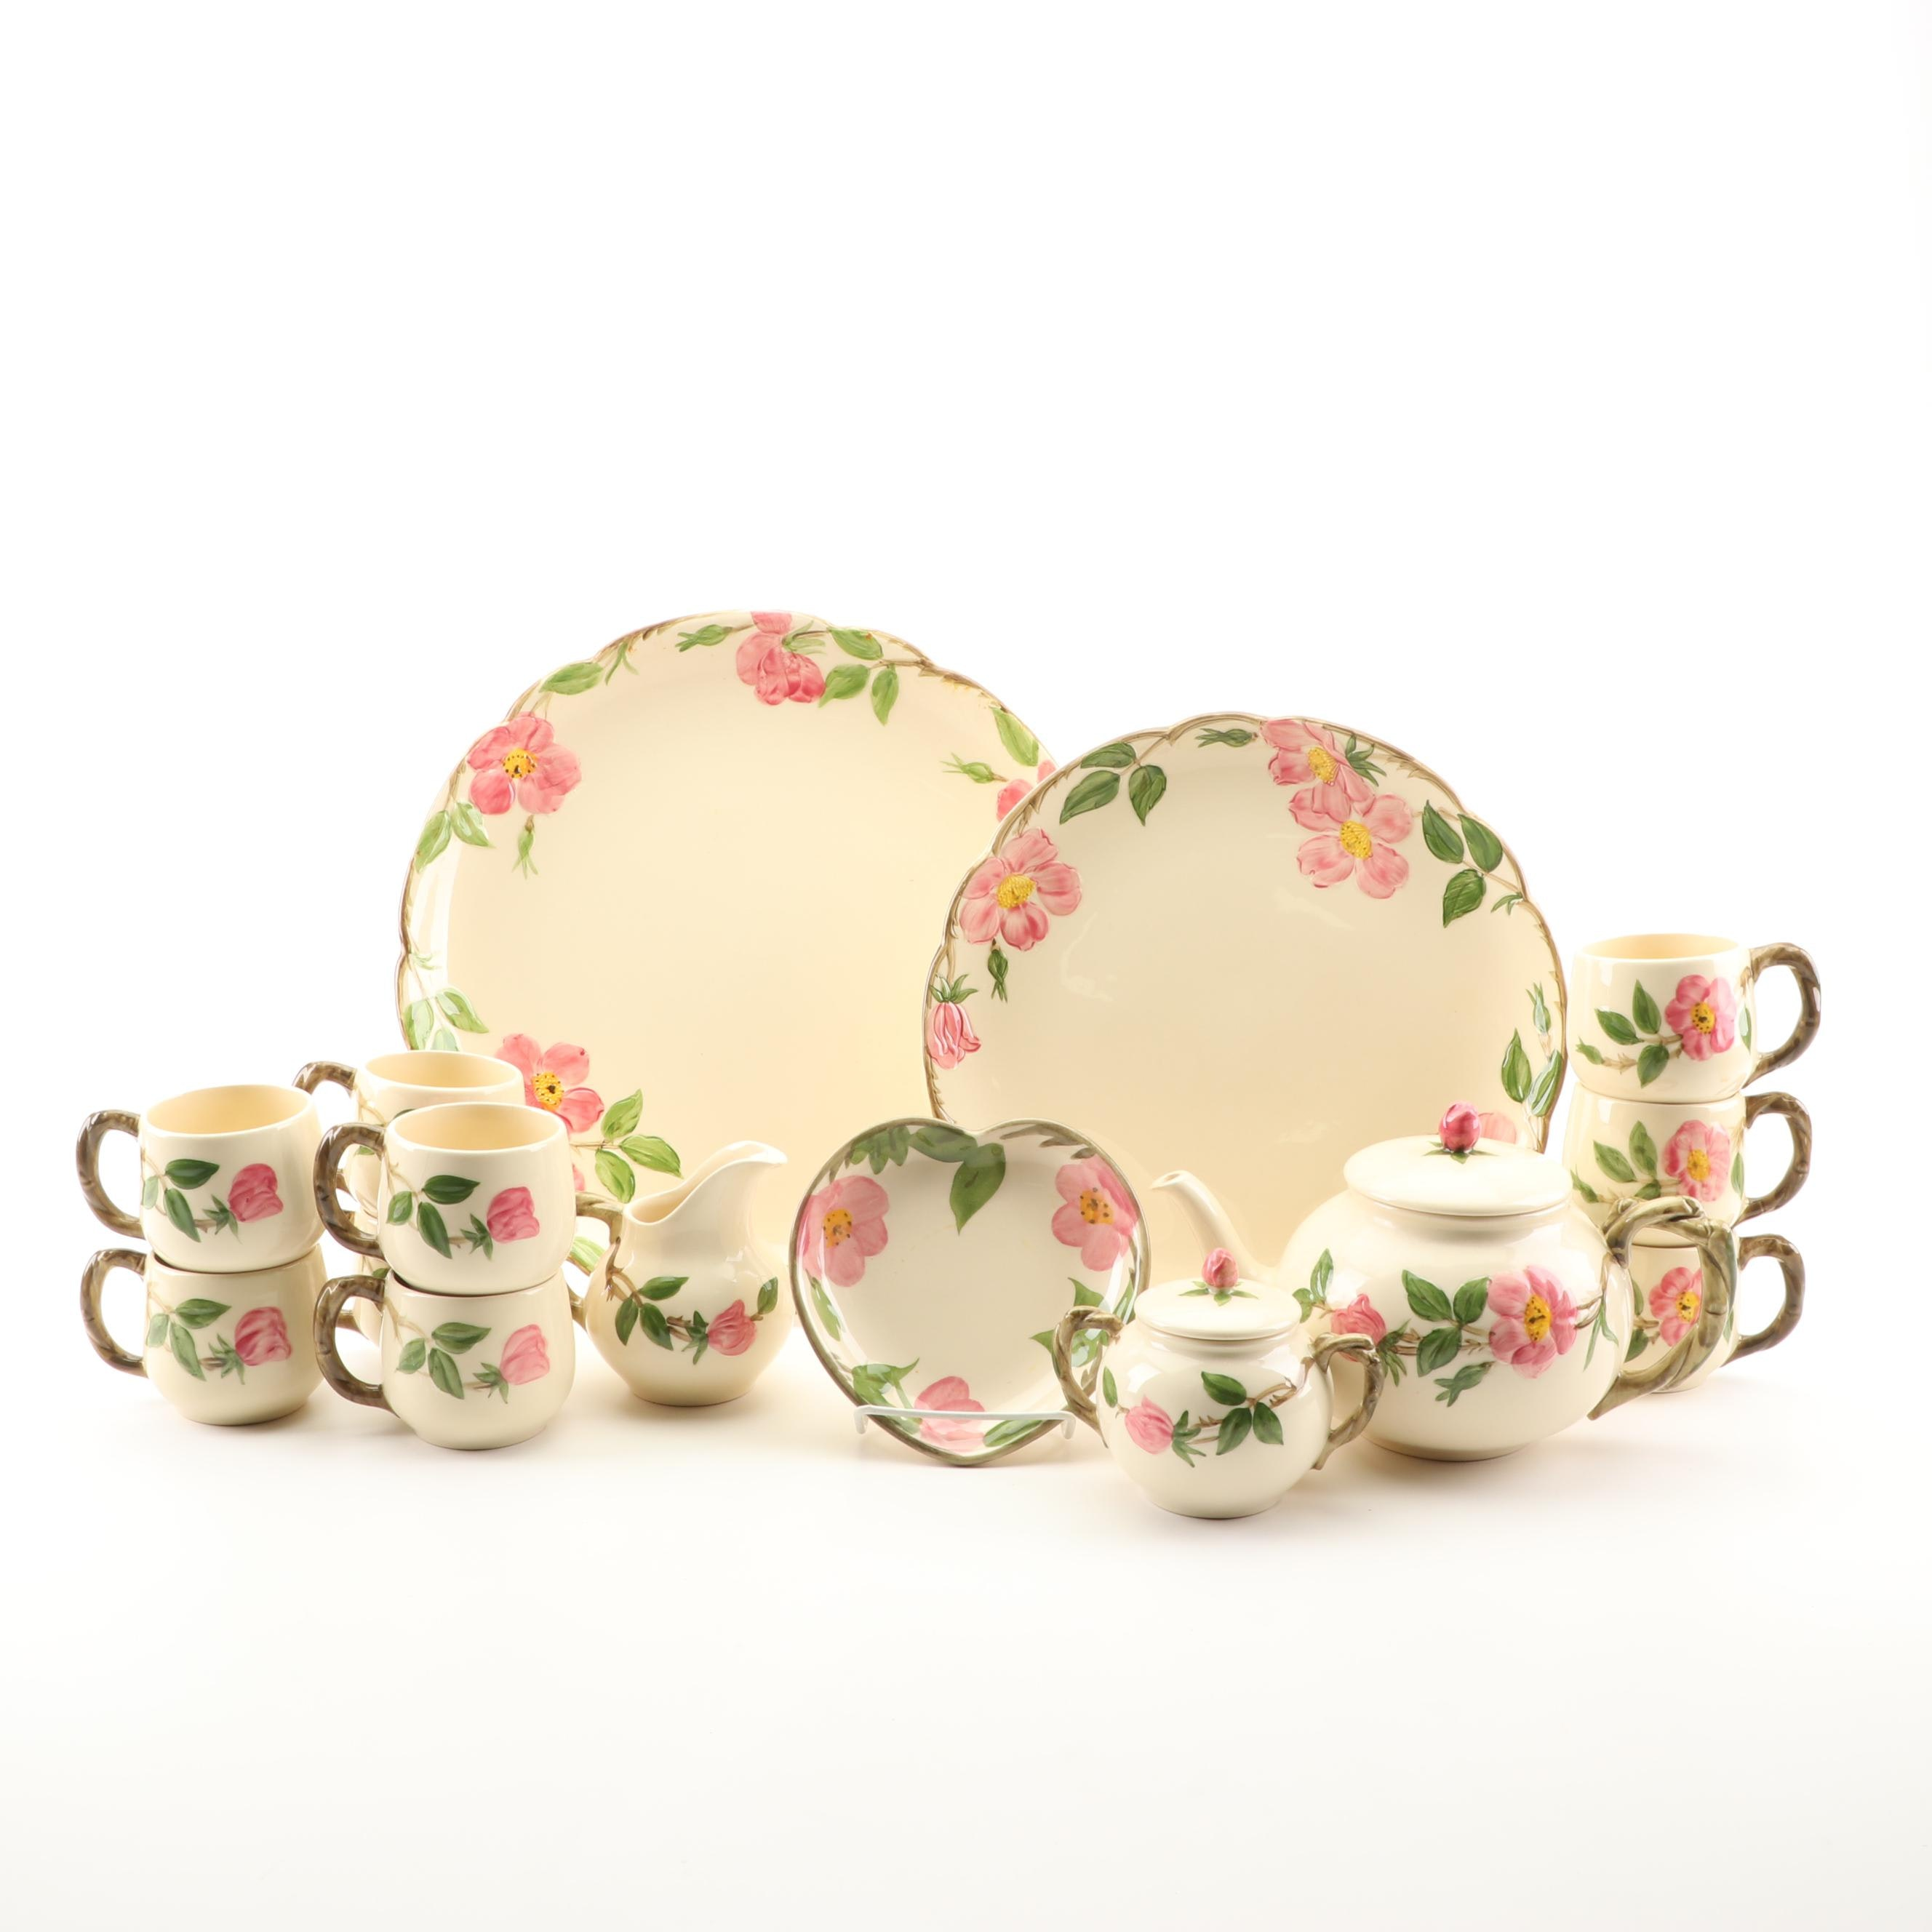 """1960s Franciscan """"Desert Rose"""" Tableware with Contemporary Heart Bonbon Dish"""